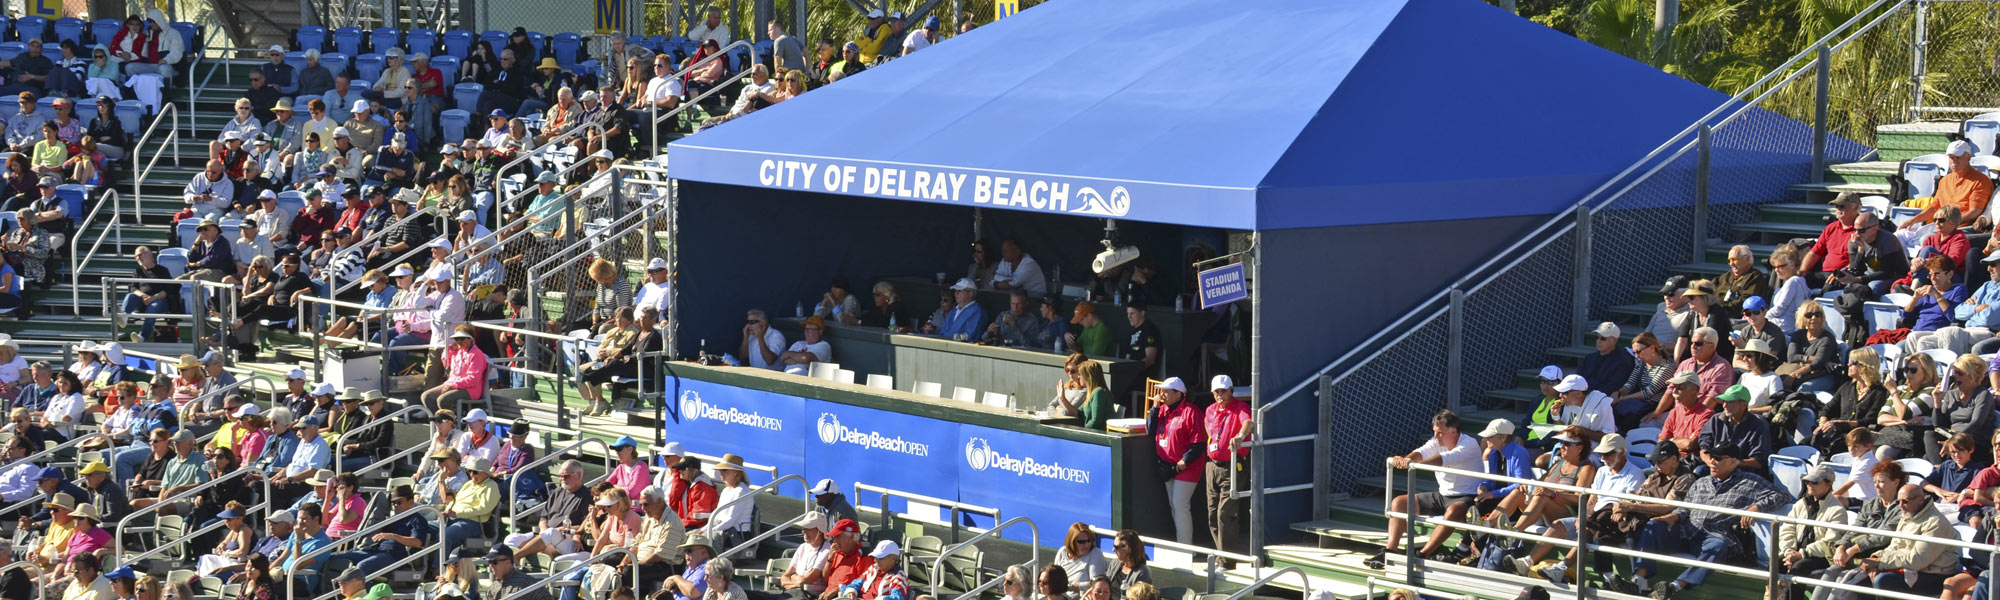 delray-beach-open-series-vernada-img-1